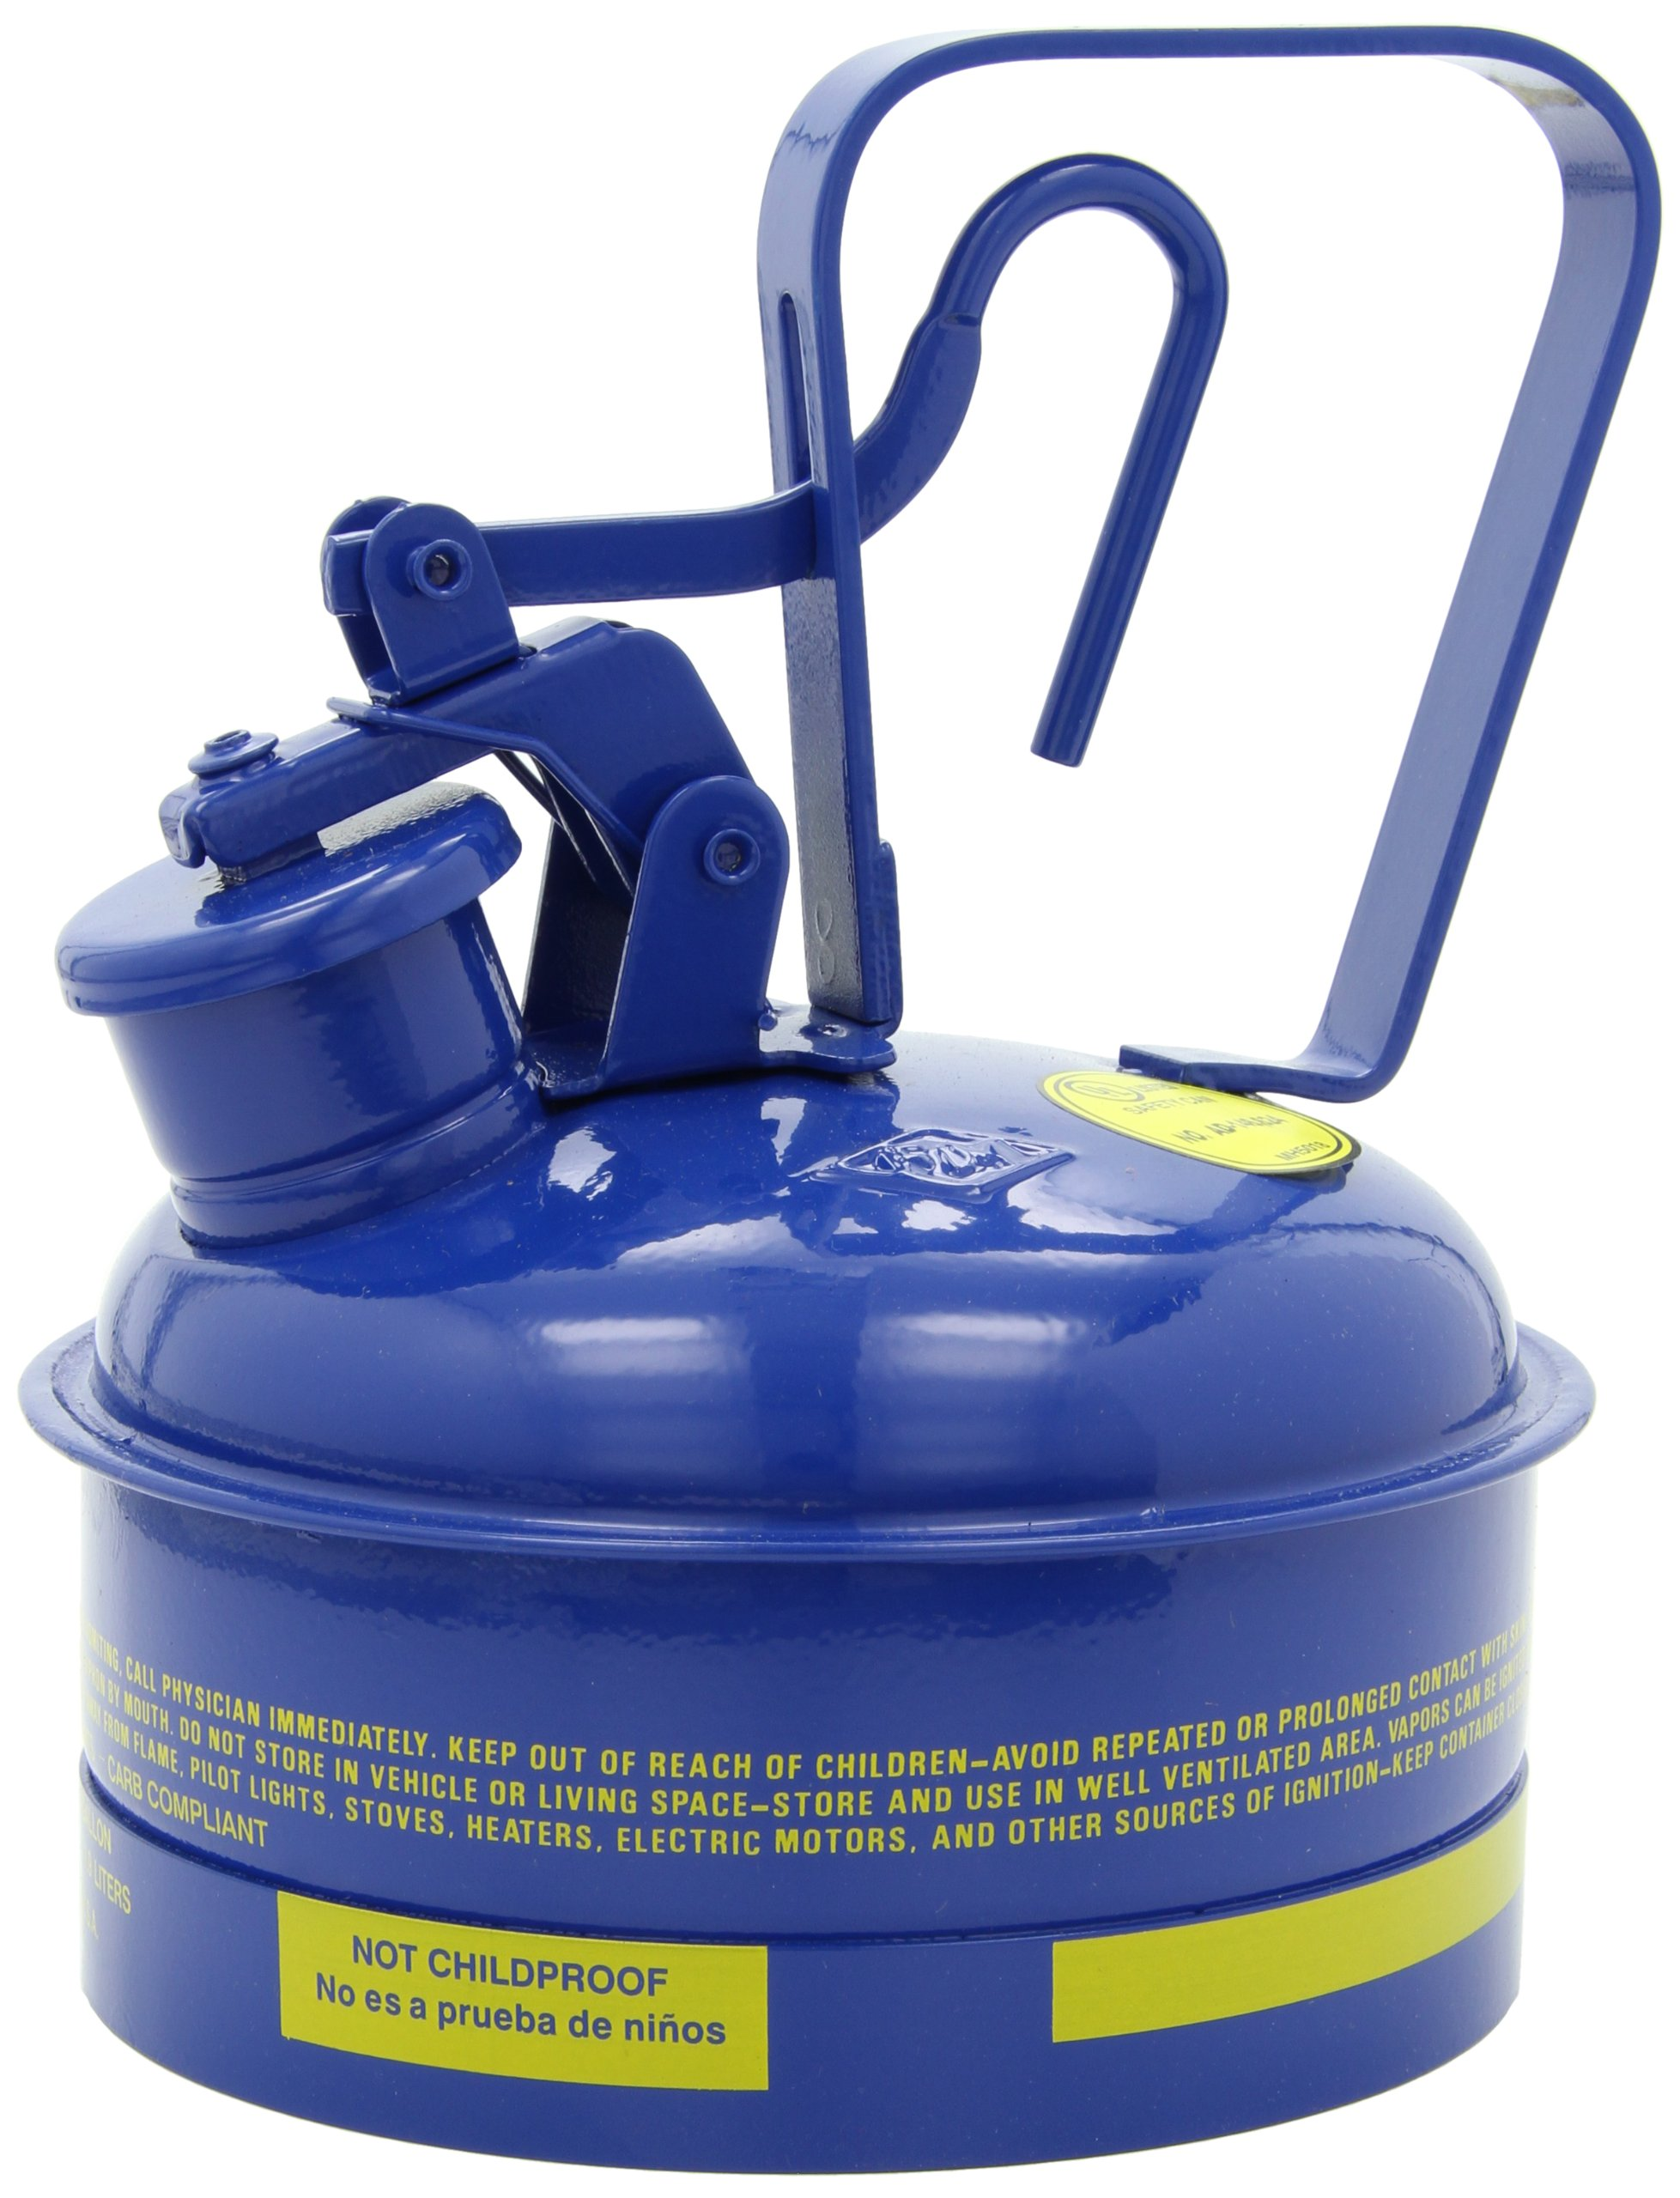 Eagle UI-50-SB Type I Metal Safety Can, Kerosene, 12-1/2'' Width x 13-1/2'' Depth, 5 Gallon Capacity, Blue